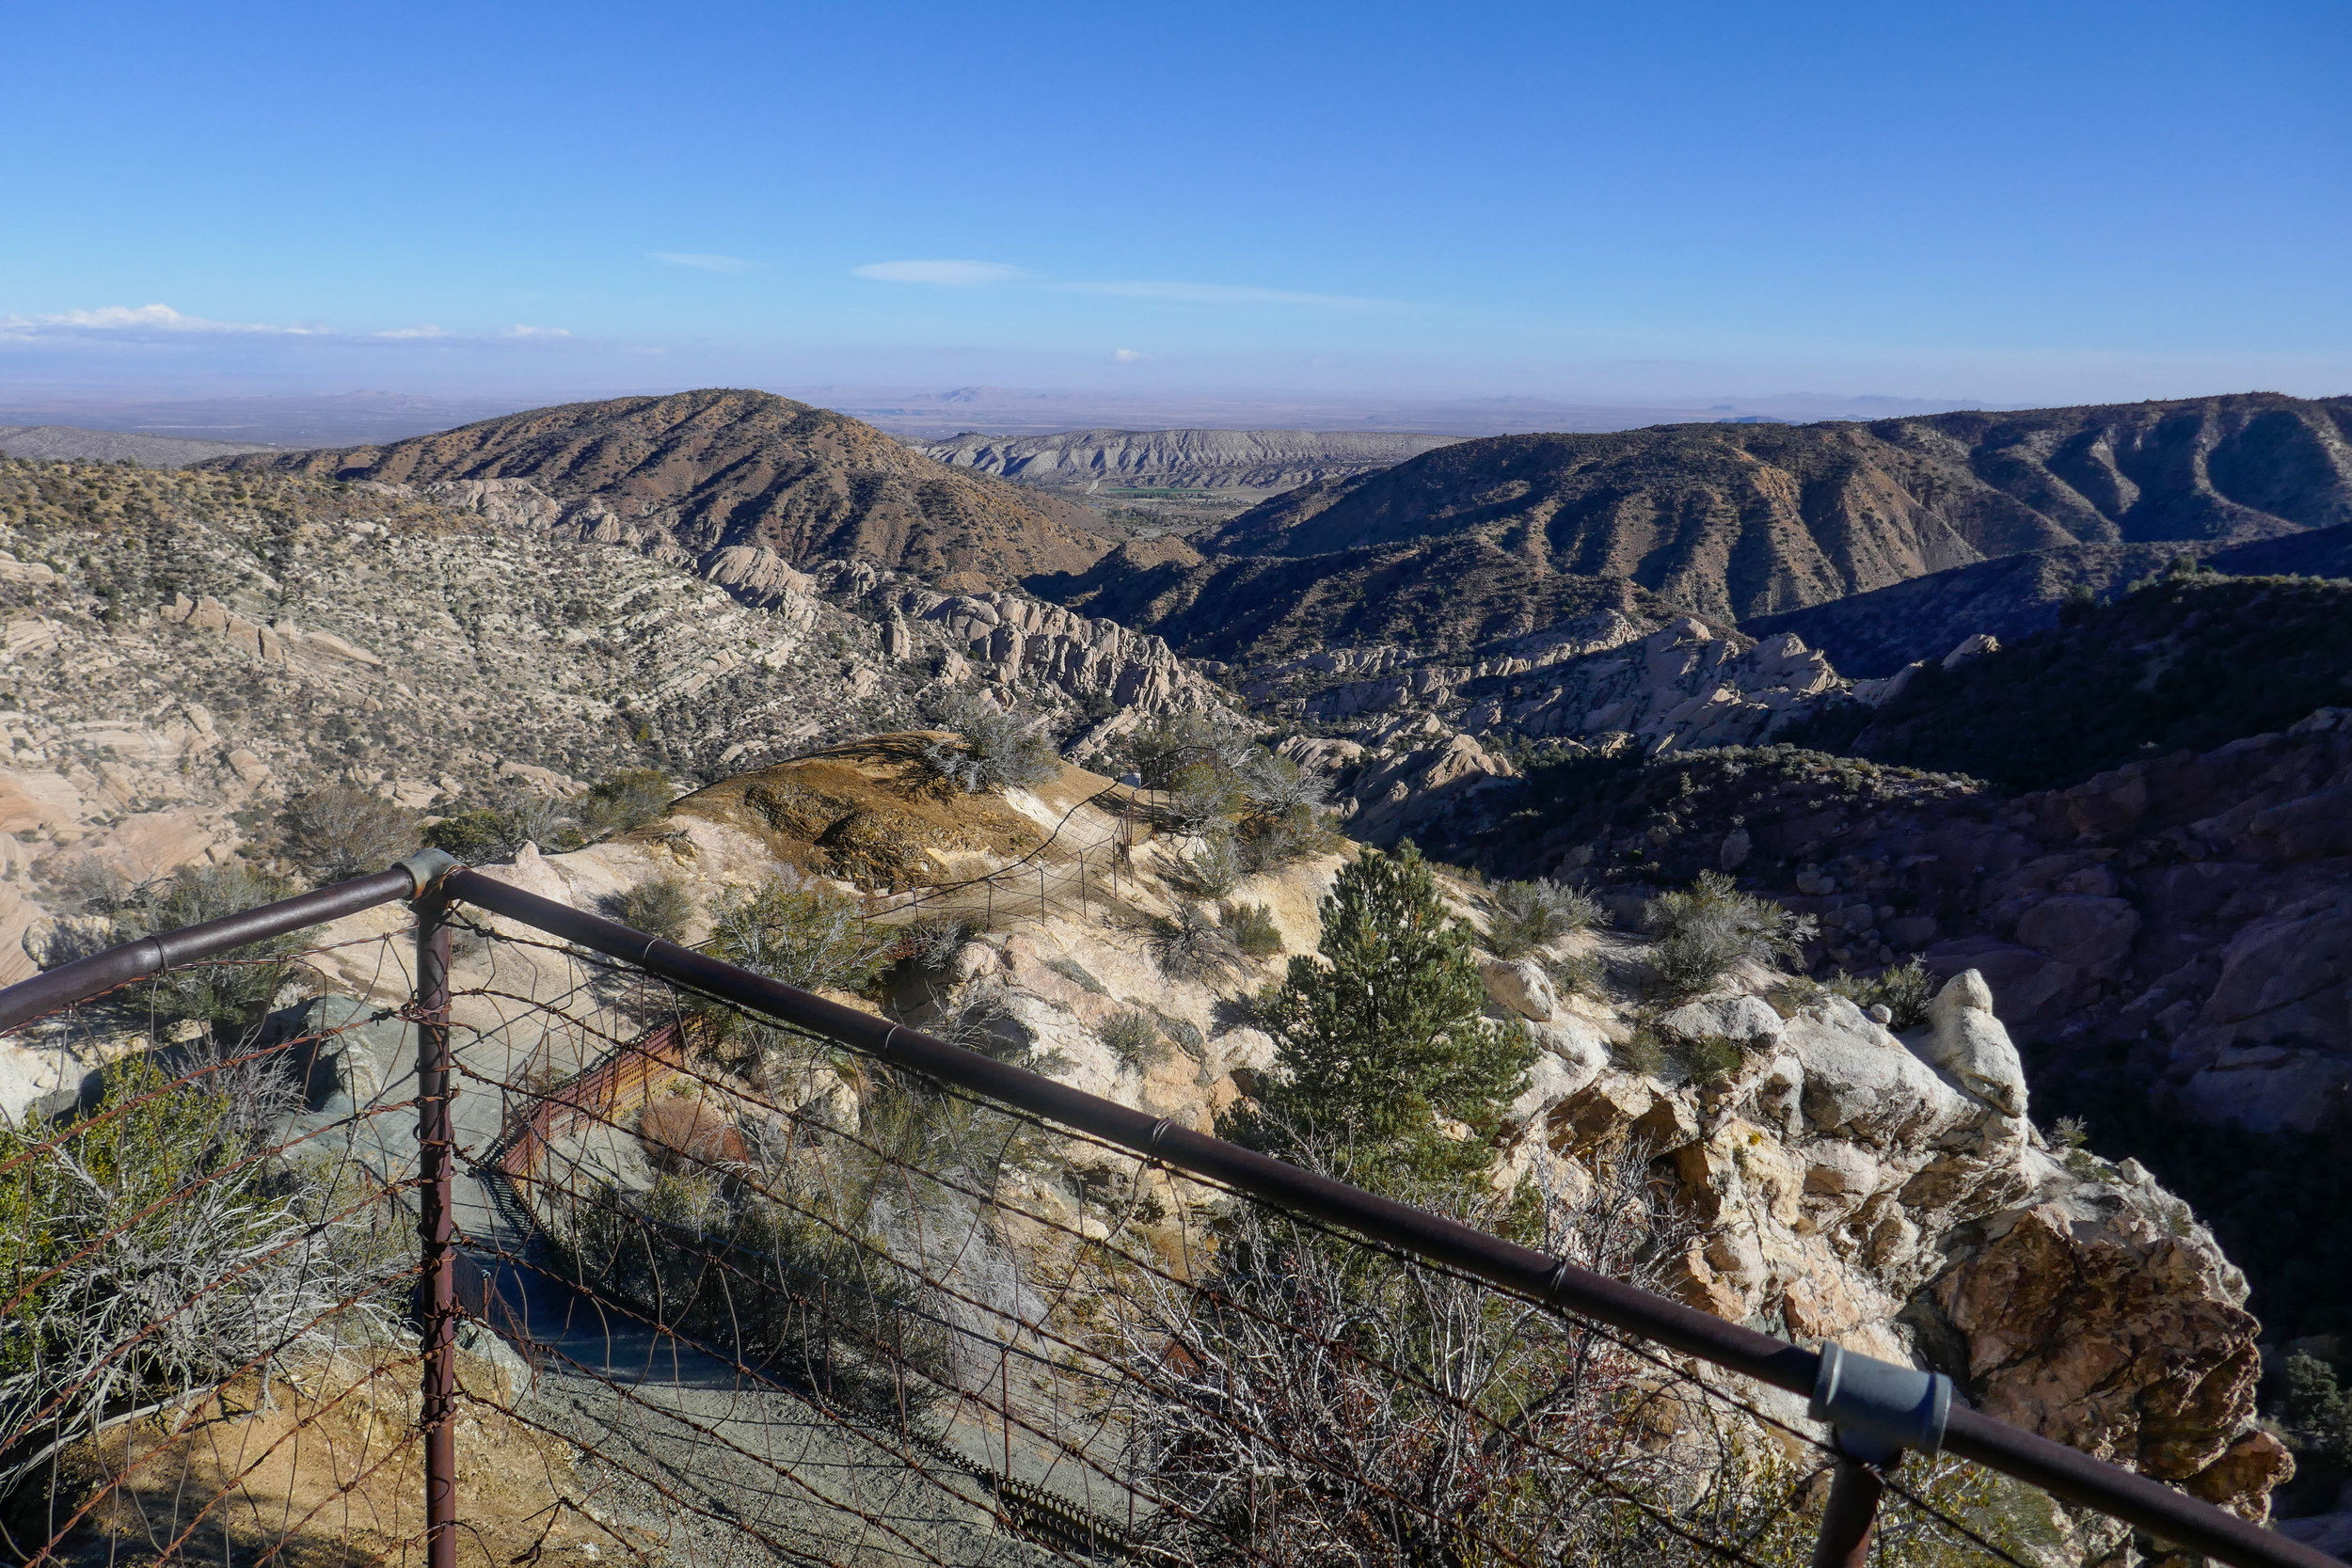 The last part of the descent is fenced in so you don't fall off the steep, rocky ledge.